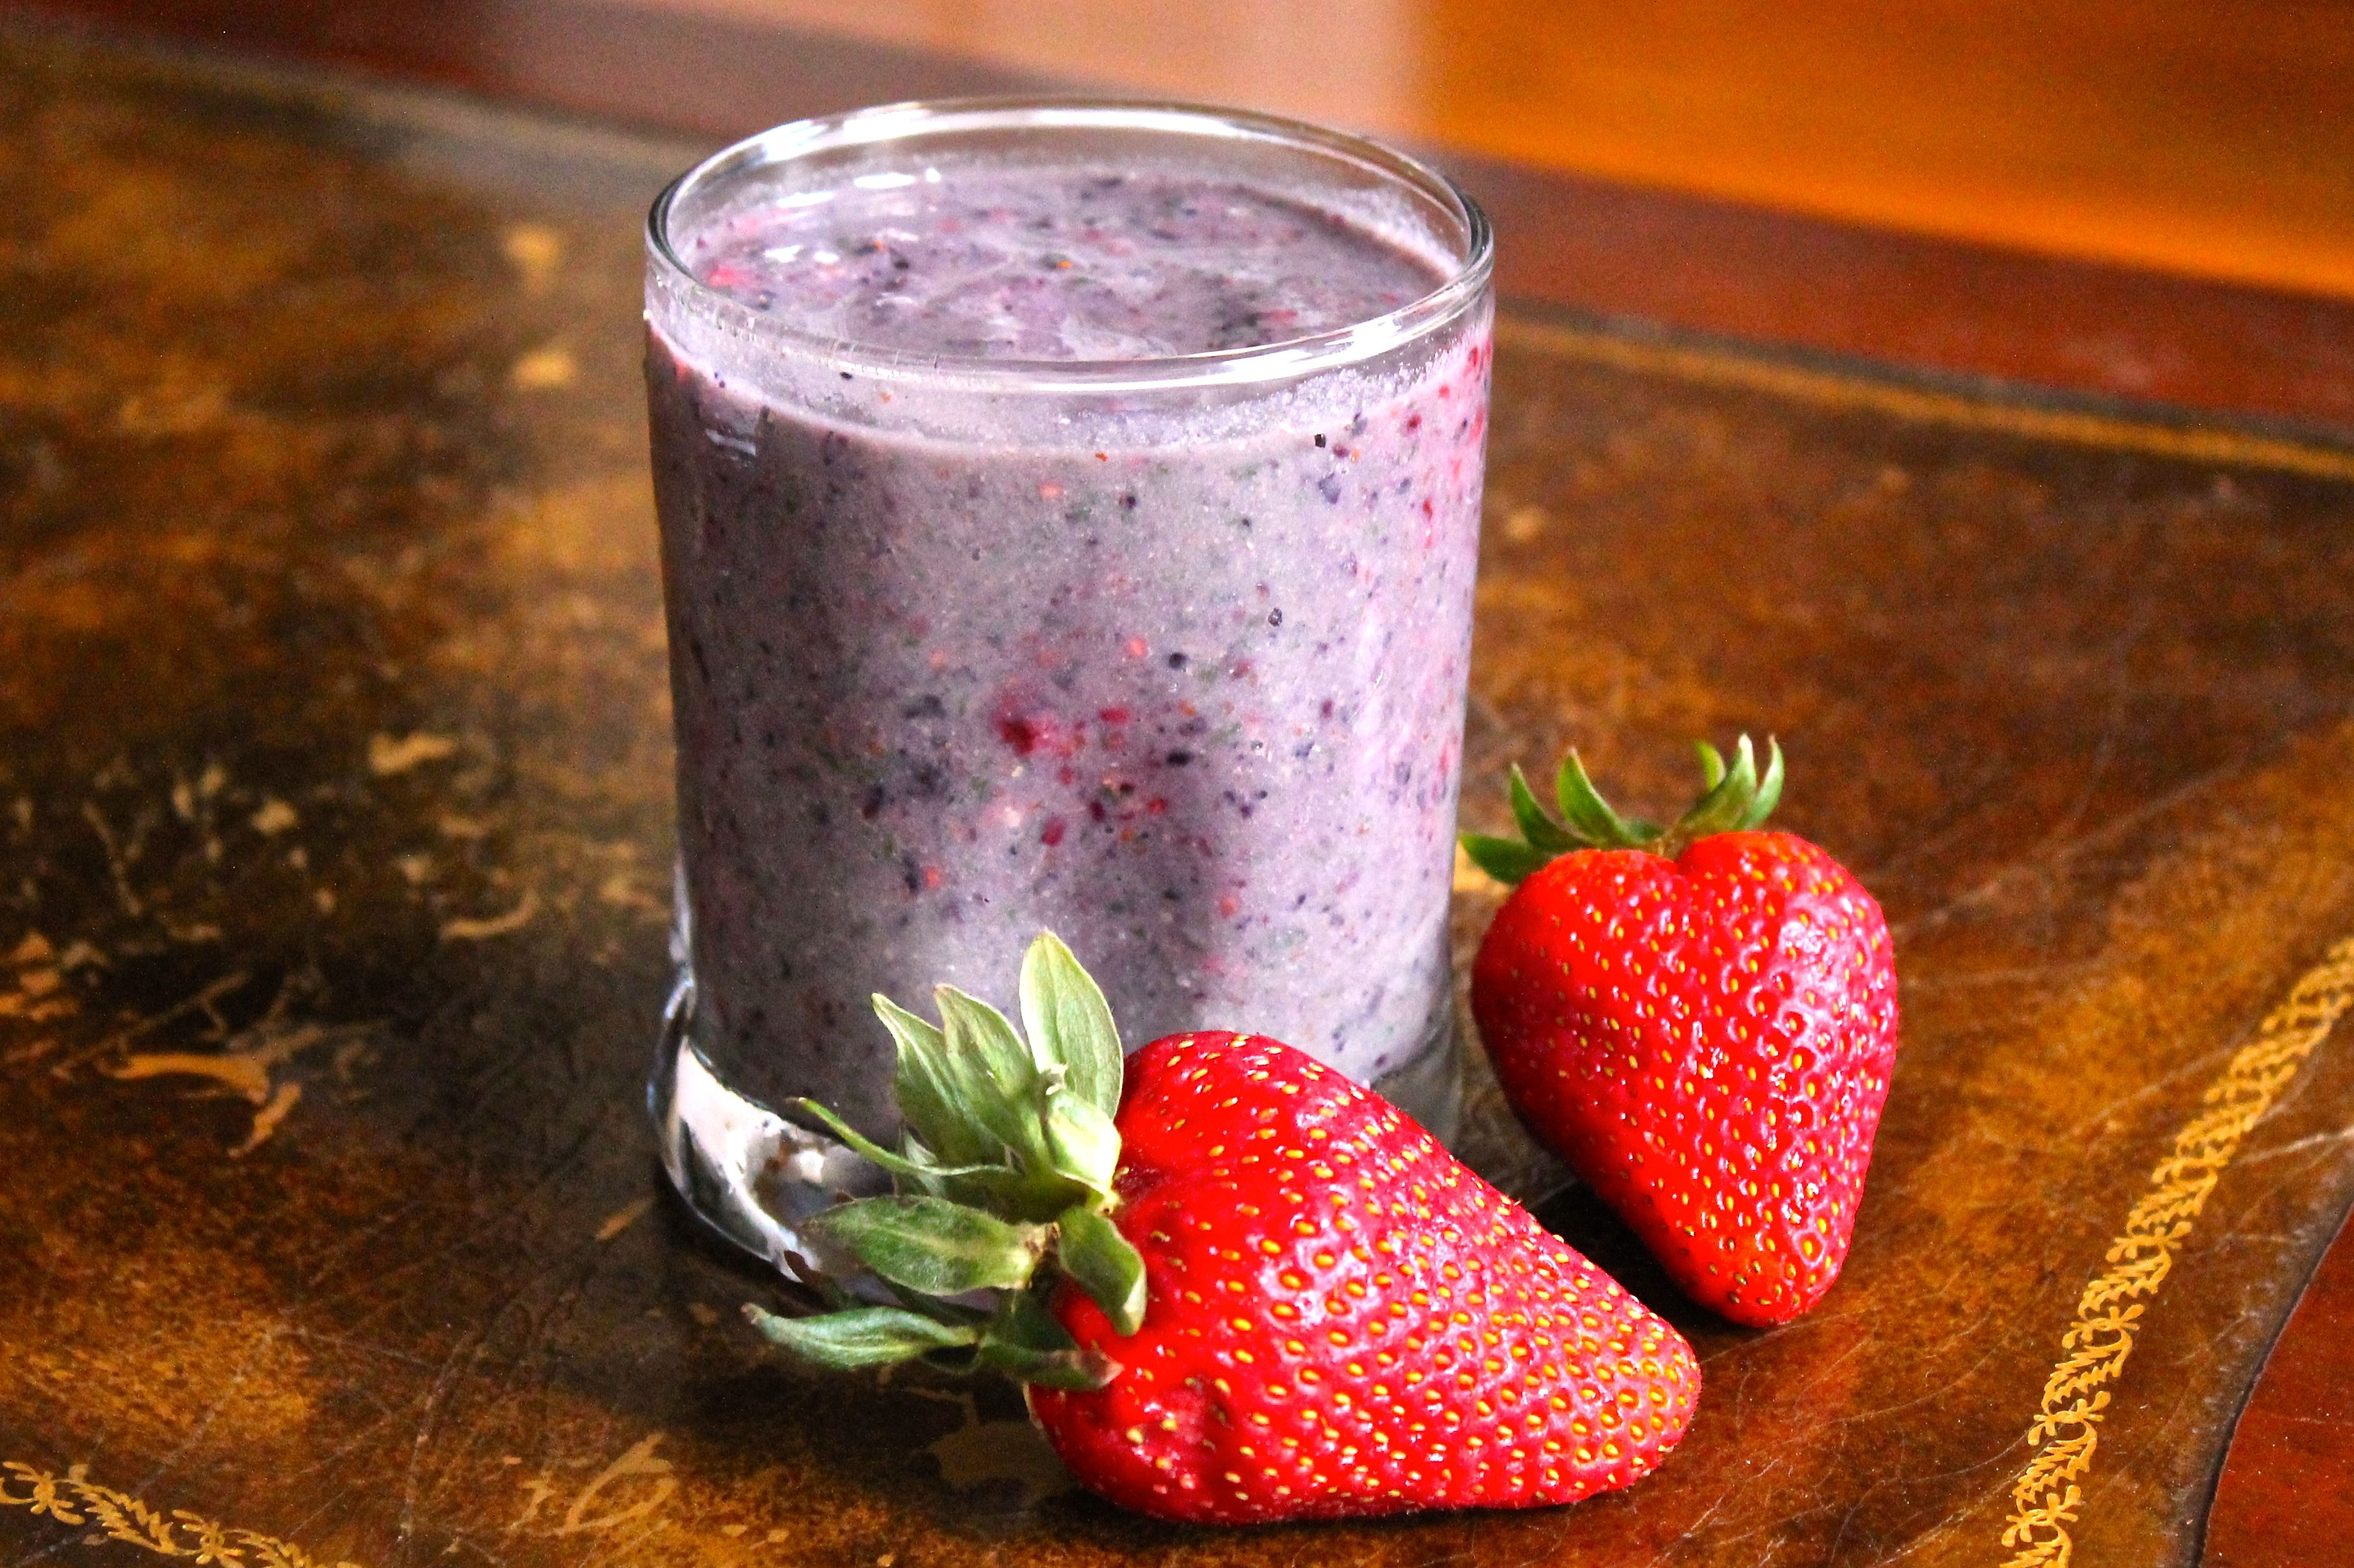 Banana, Blue Berry, Strawberry, Kale, Almond Milk, Ground Chia/Flax or other (Want to try Sesame and/or Amaranth)